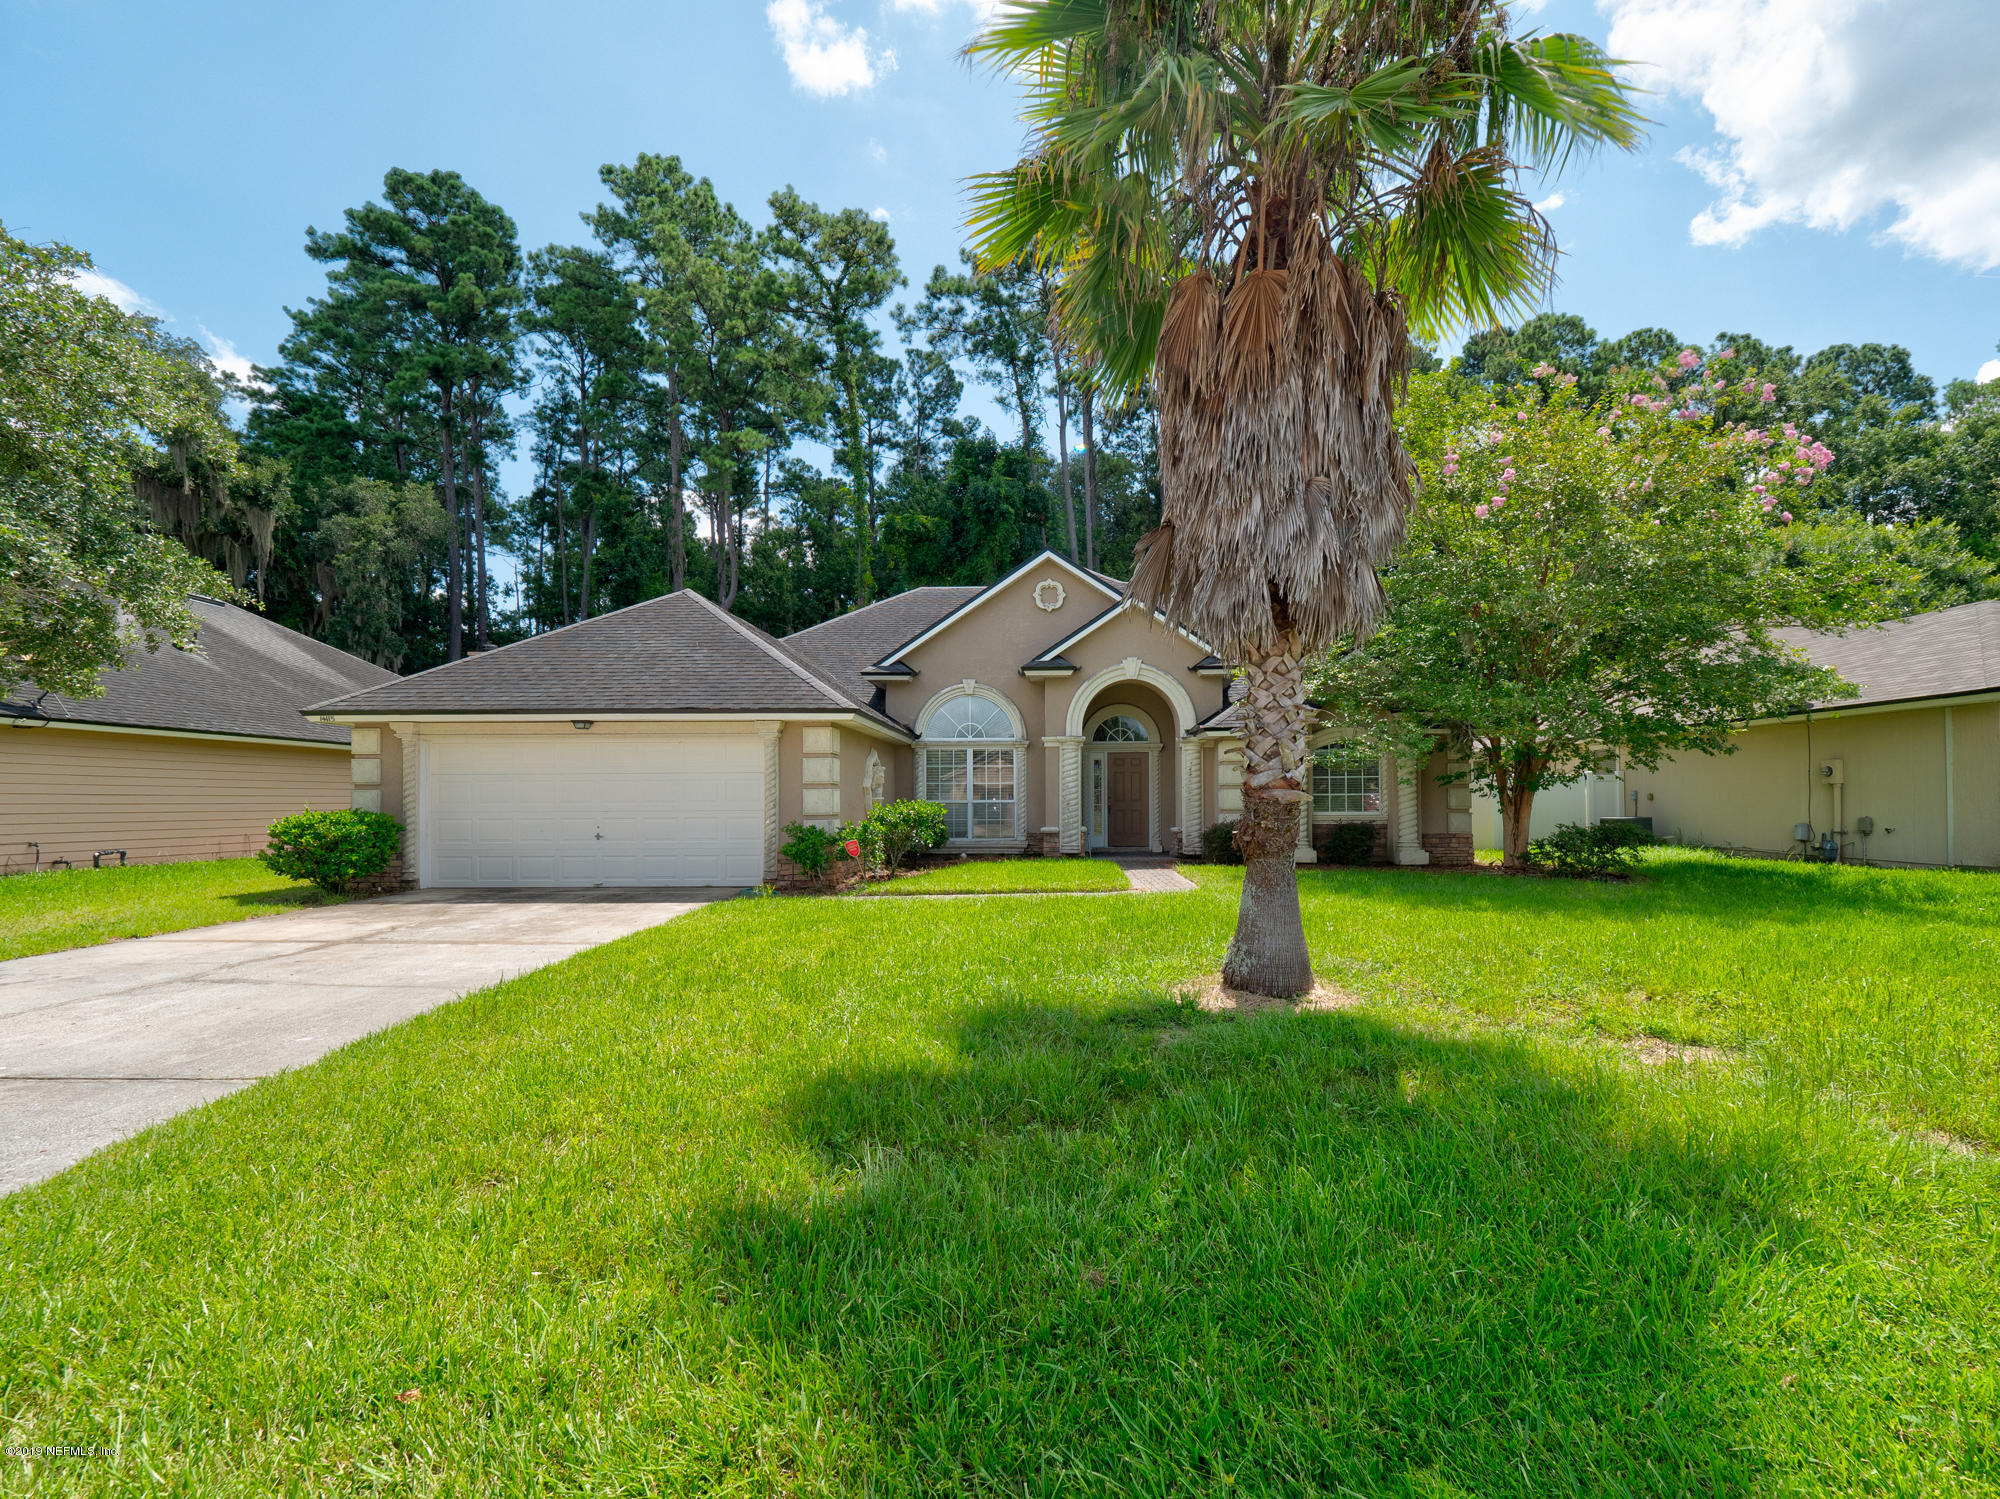 14115 Summer Breeze Dr Jacksonville, FL 32218